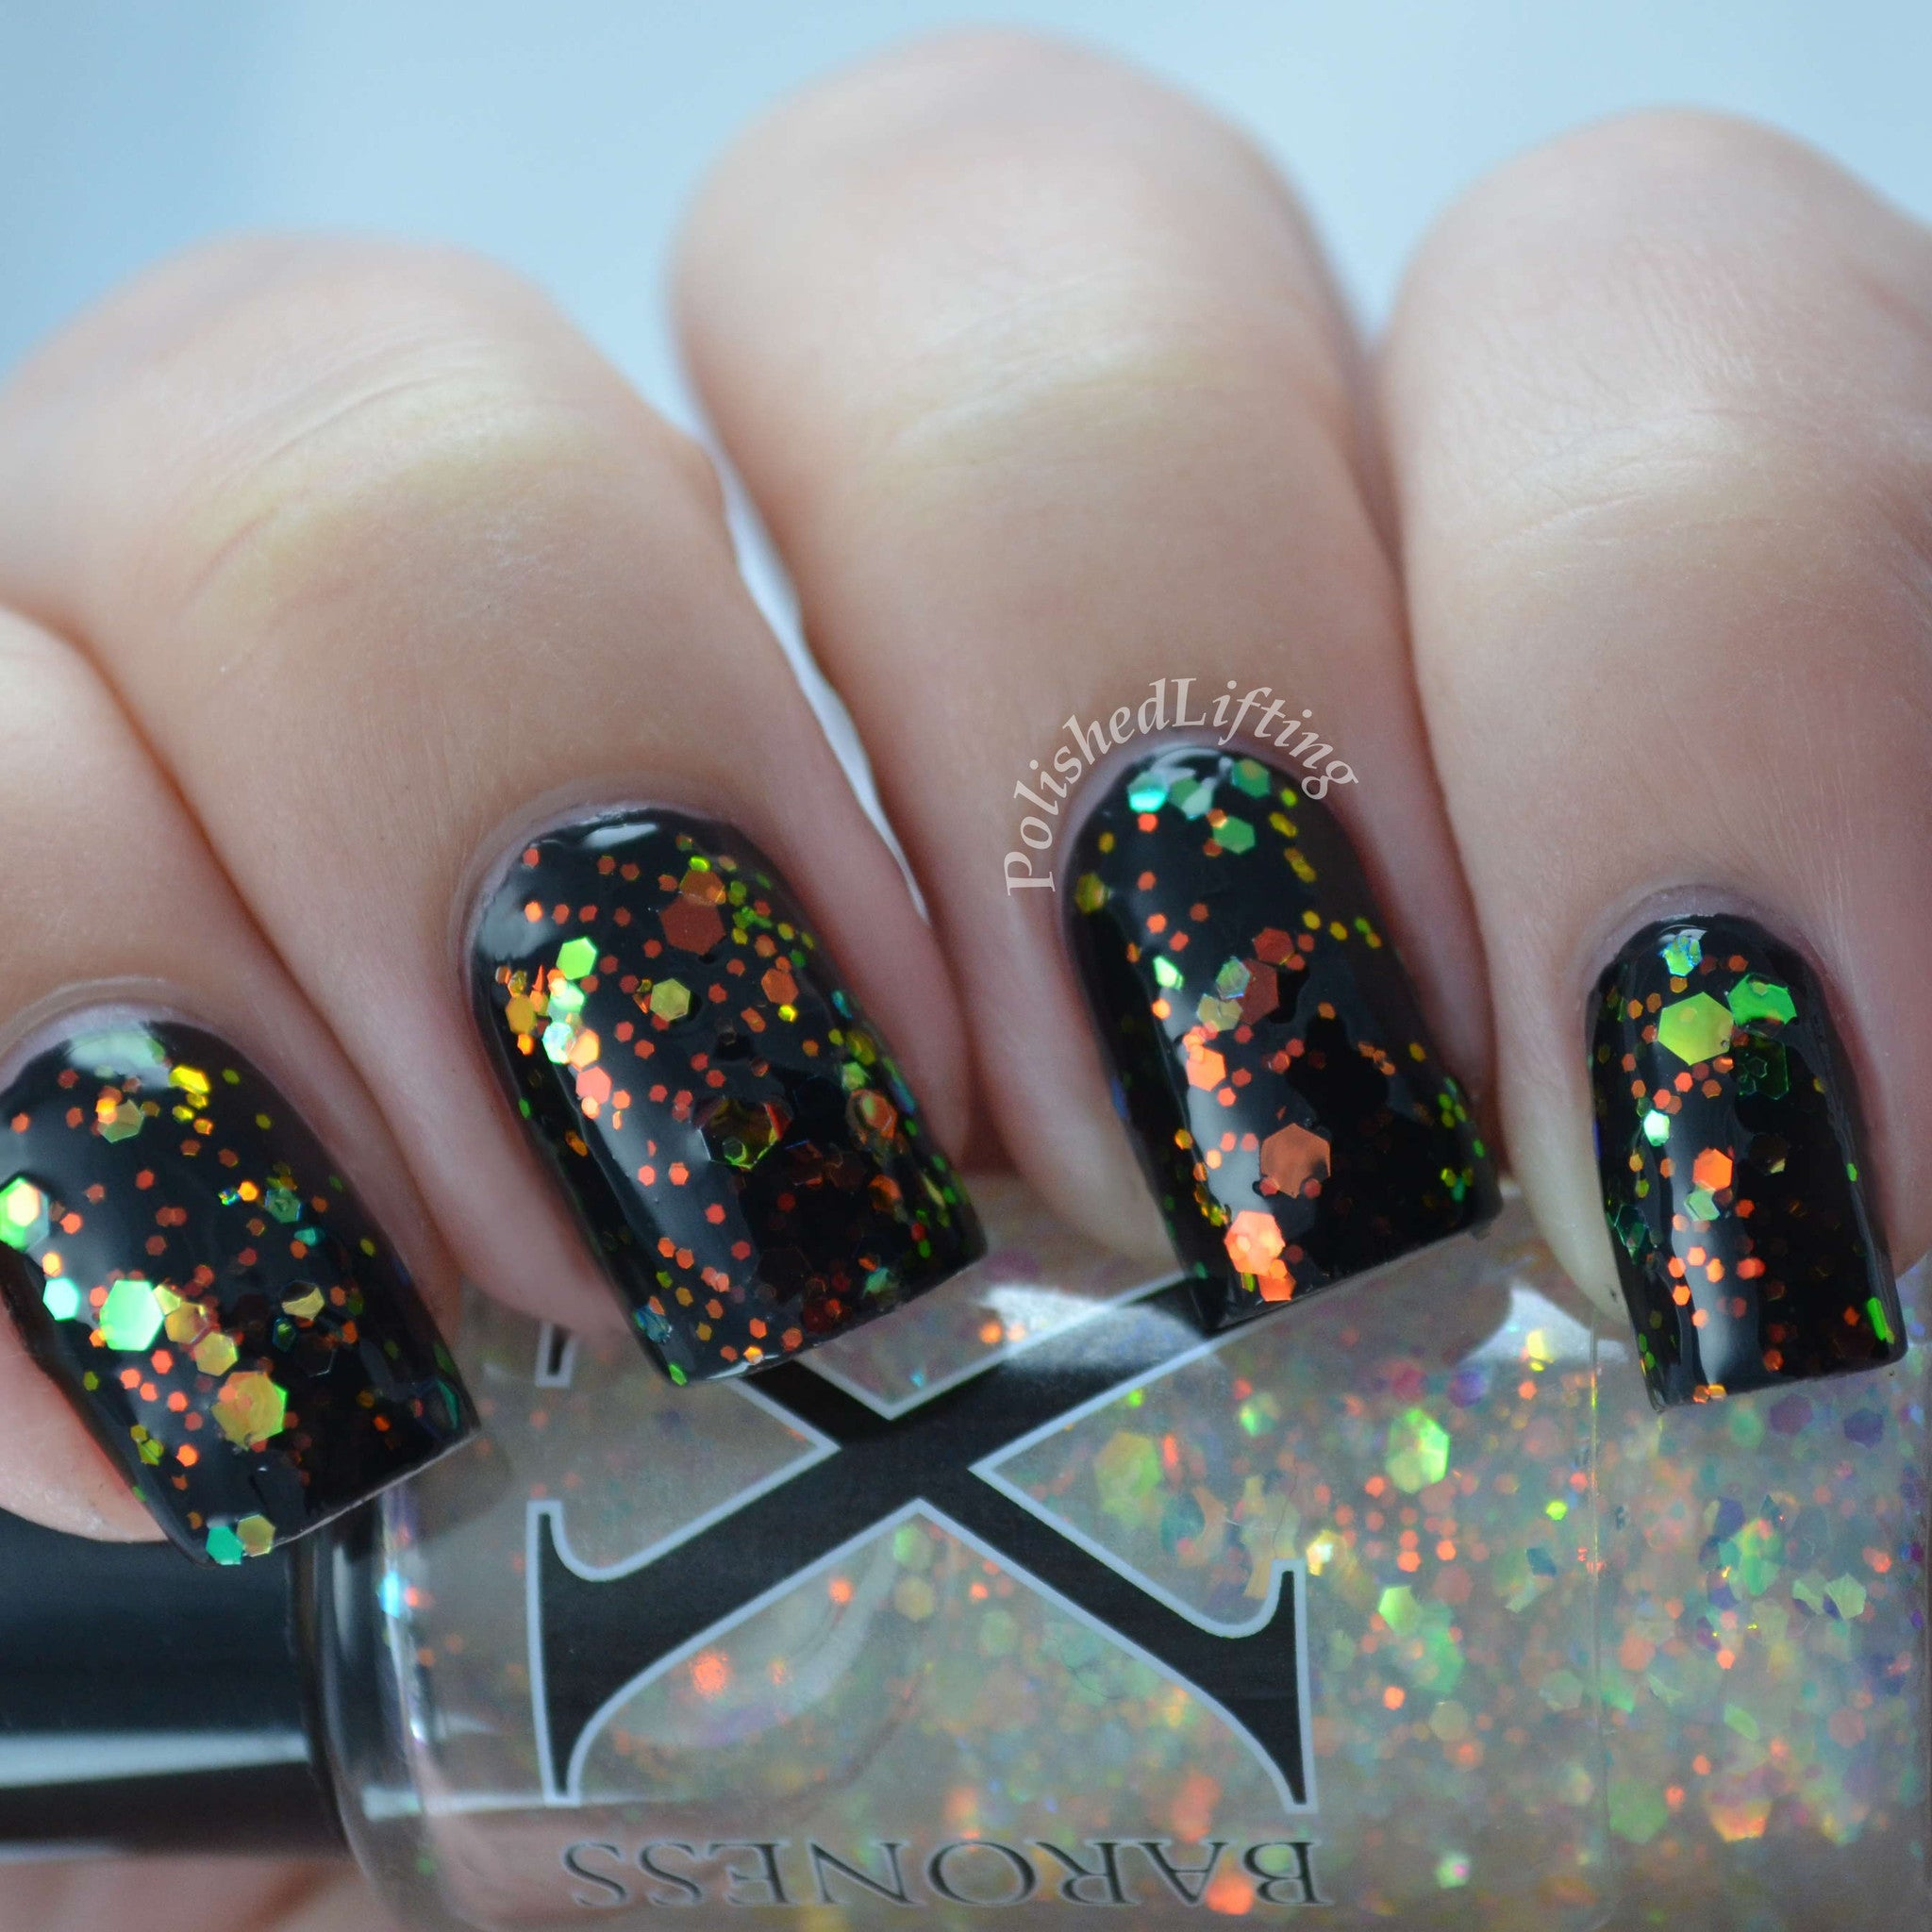 Eerie-descence - Multichrome Glitter w/ Bright Iridescent Shifting ...